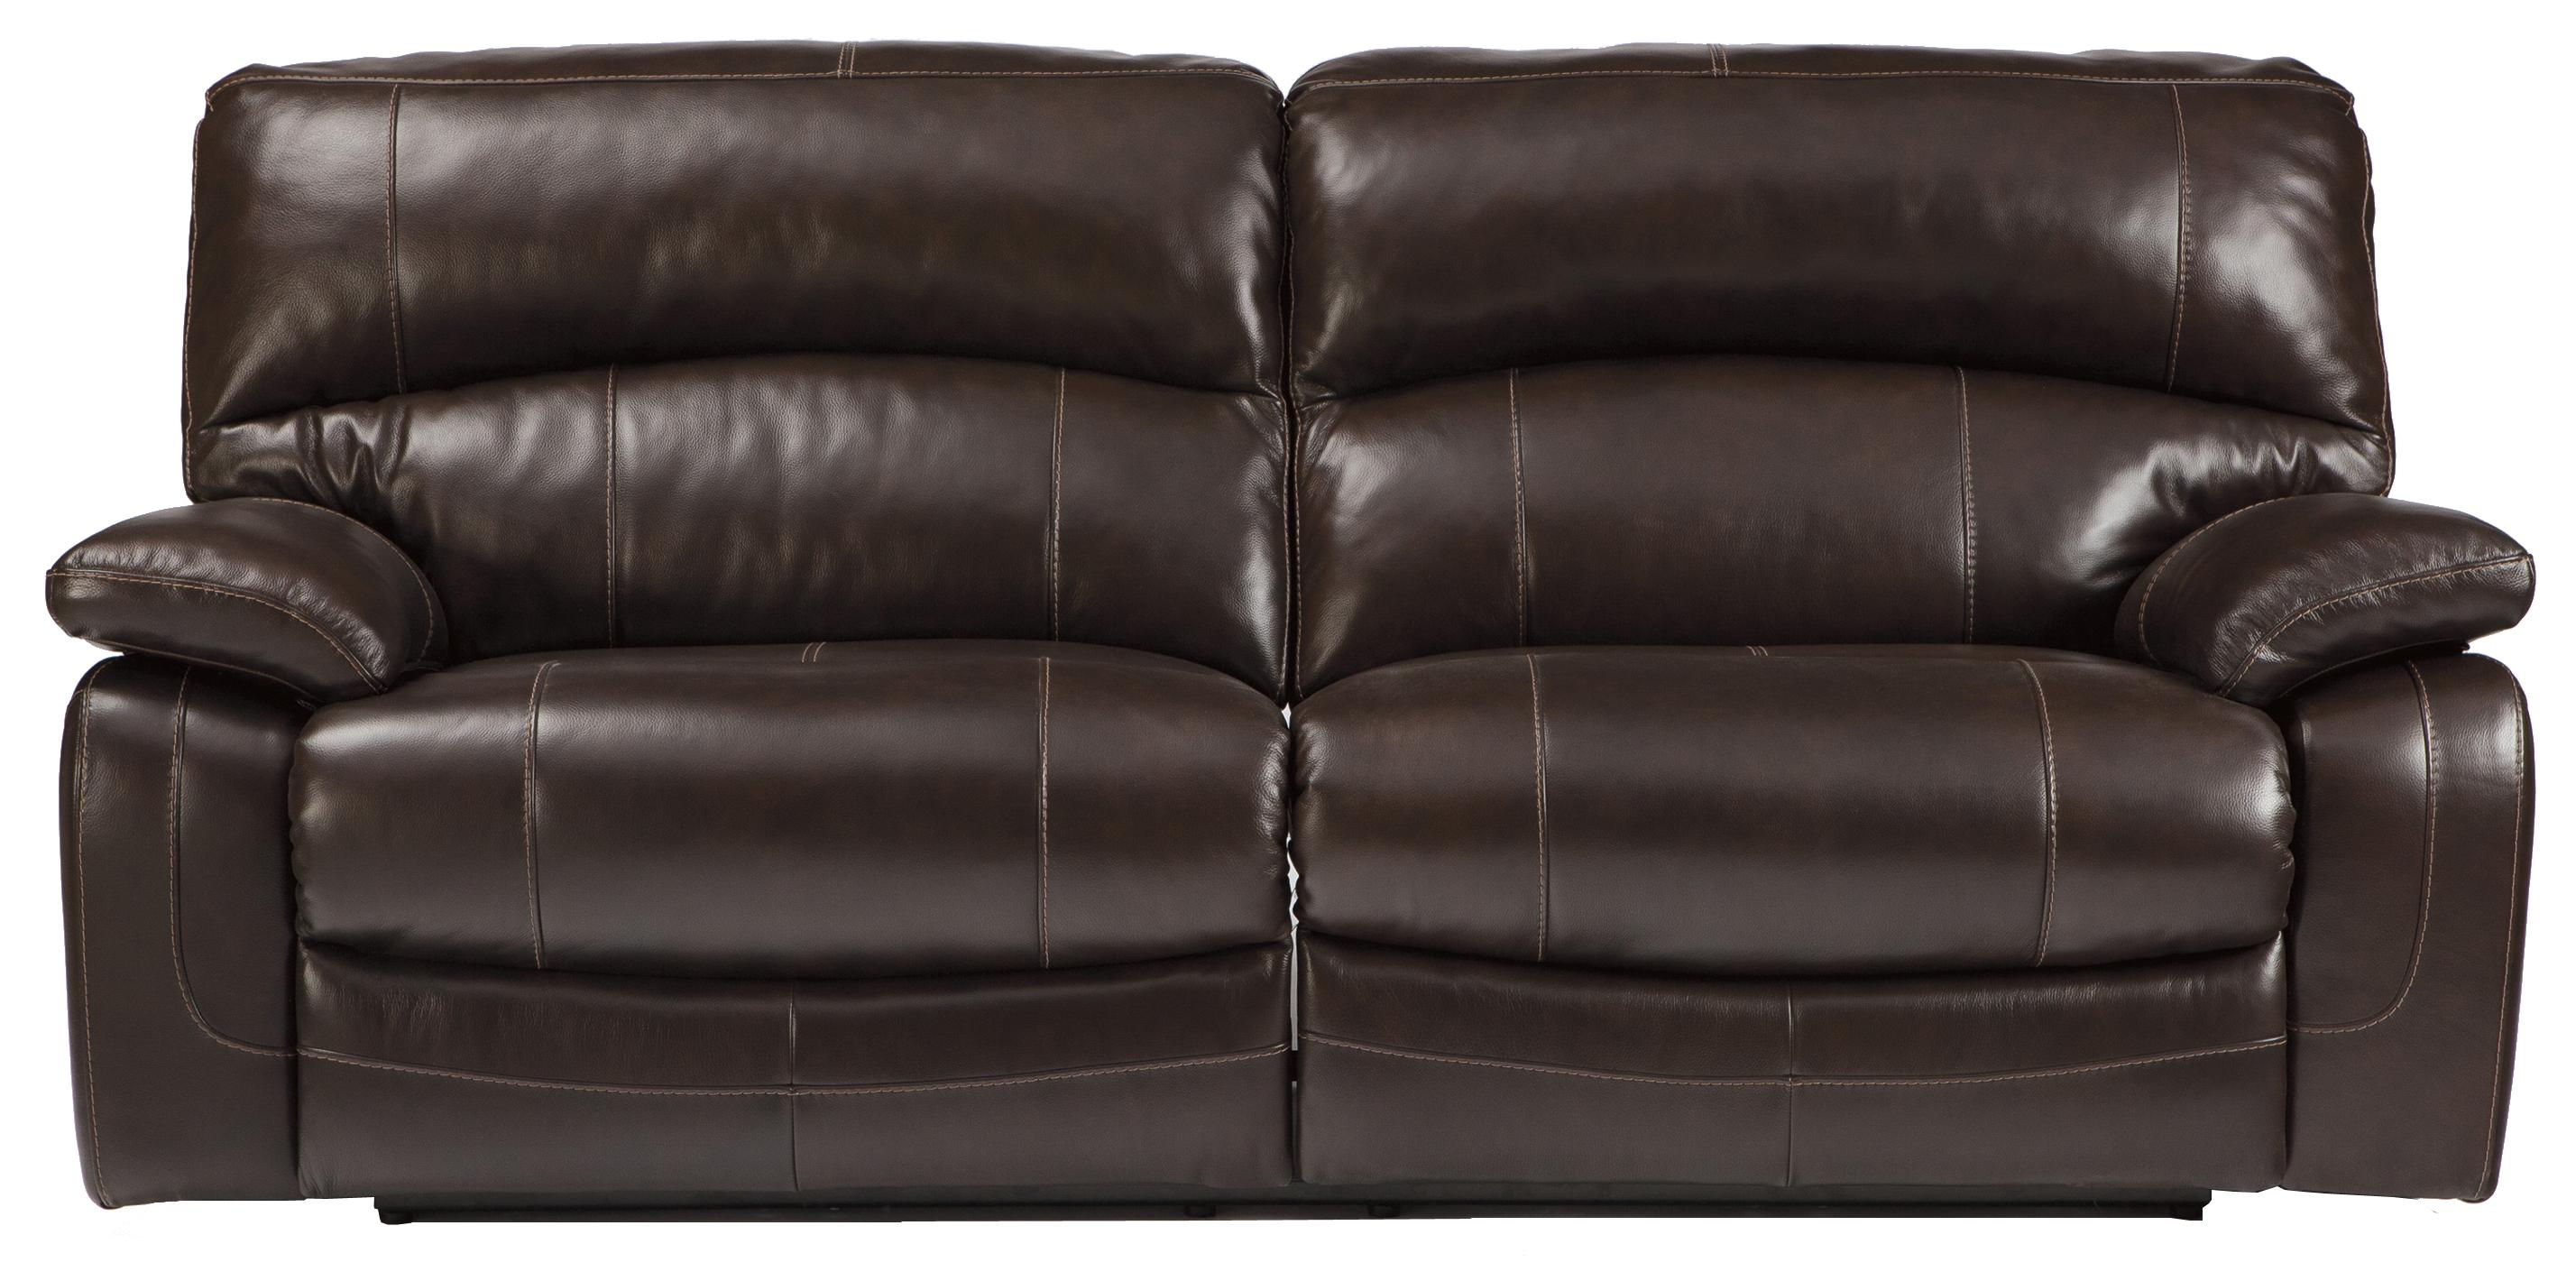 Signature Design by Ashley Damacio - Dark Brown 2 Seat Reclining Power Sofa - Item Number & Signature Design by Ashley Damacio - Dark Brown Leather Match 2 ... islam-shia.org